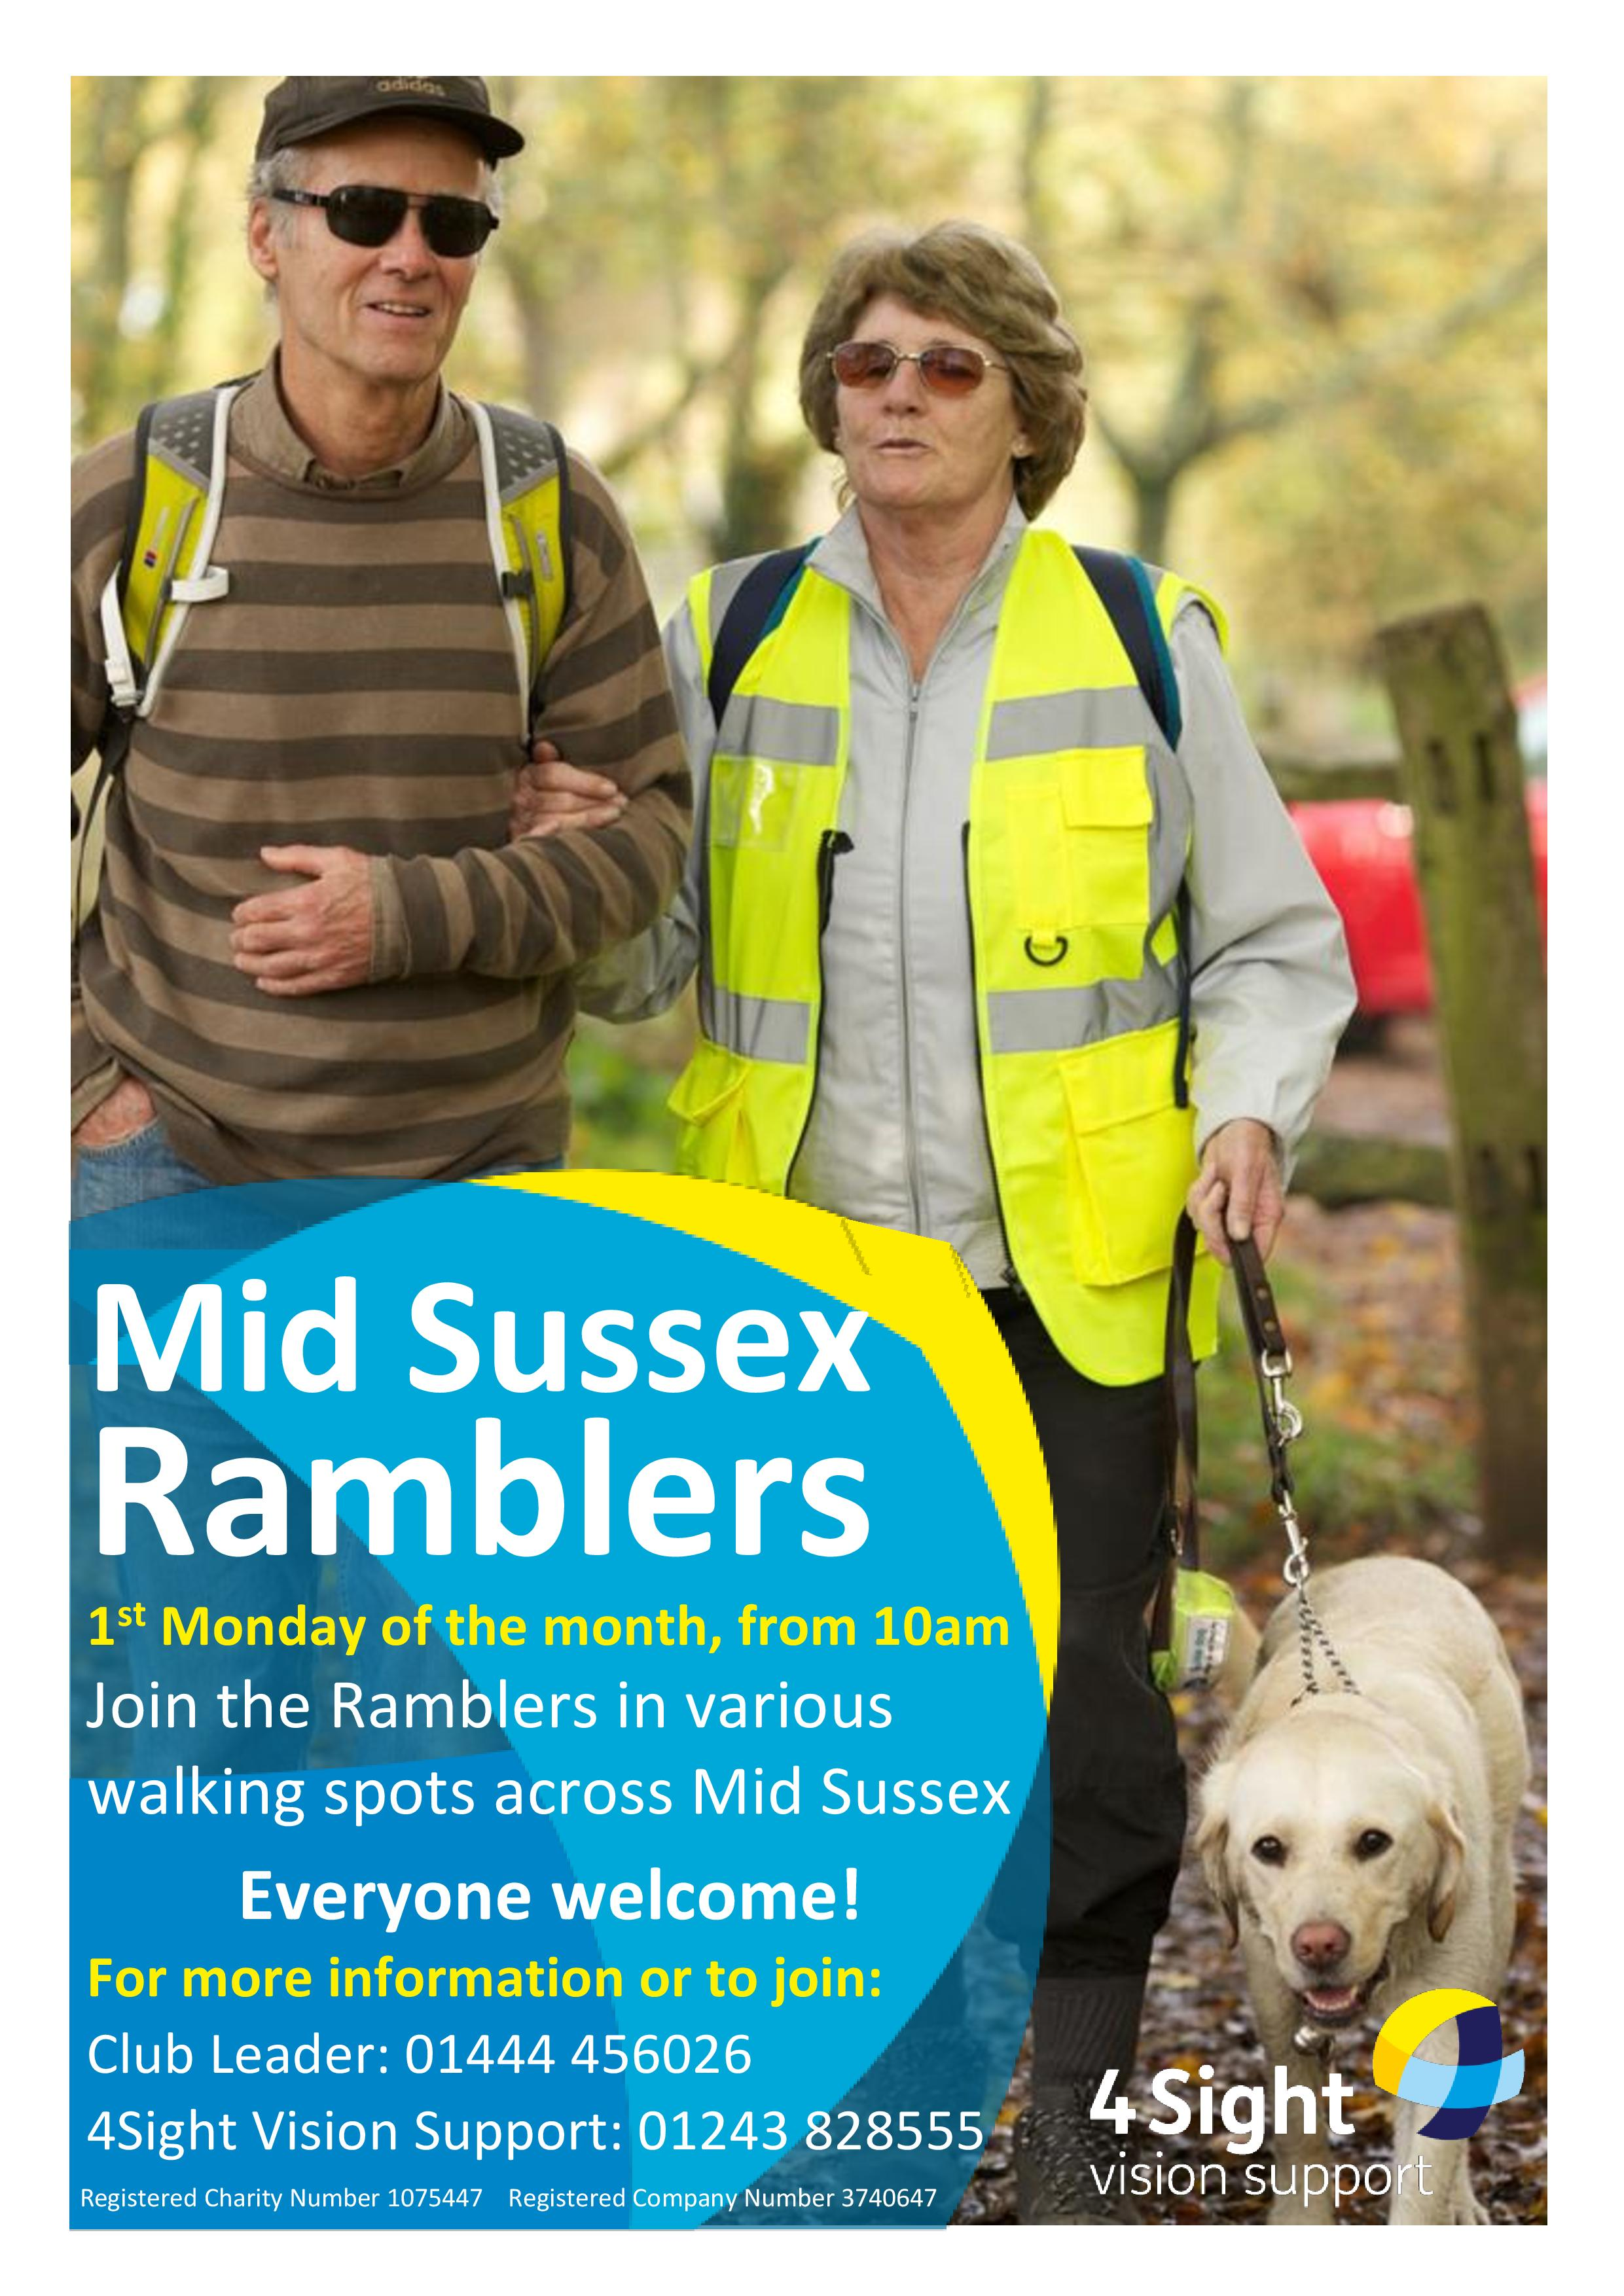 Mid Sussex Ramblers